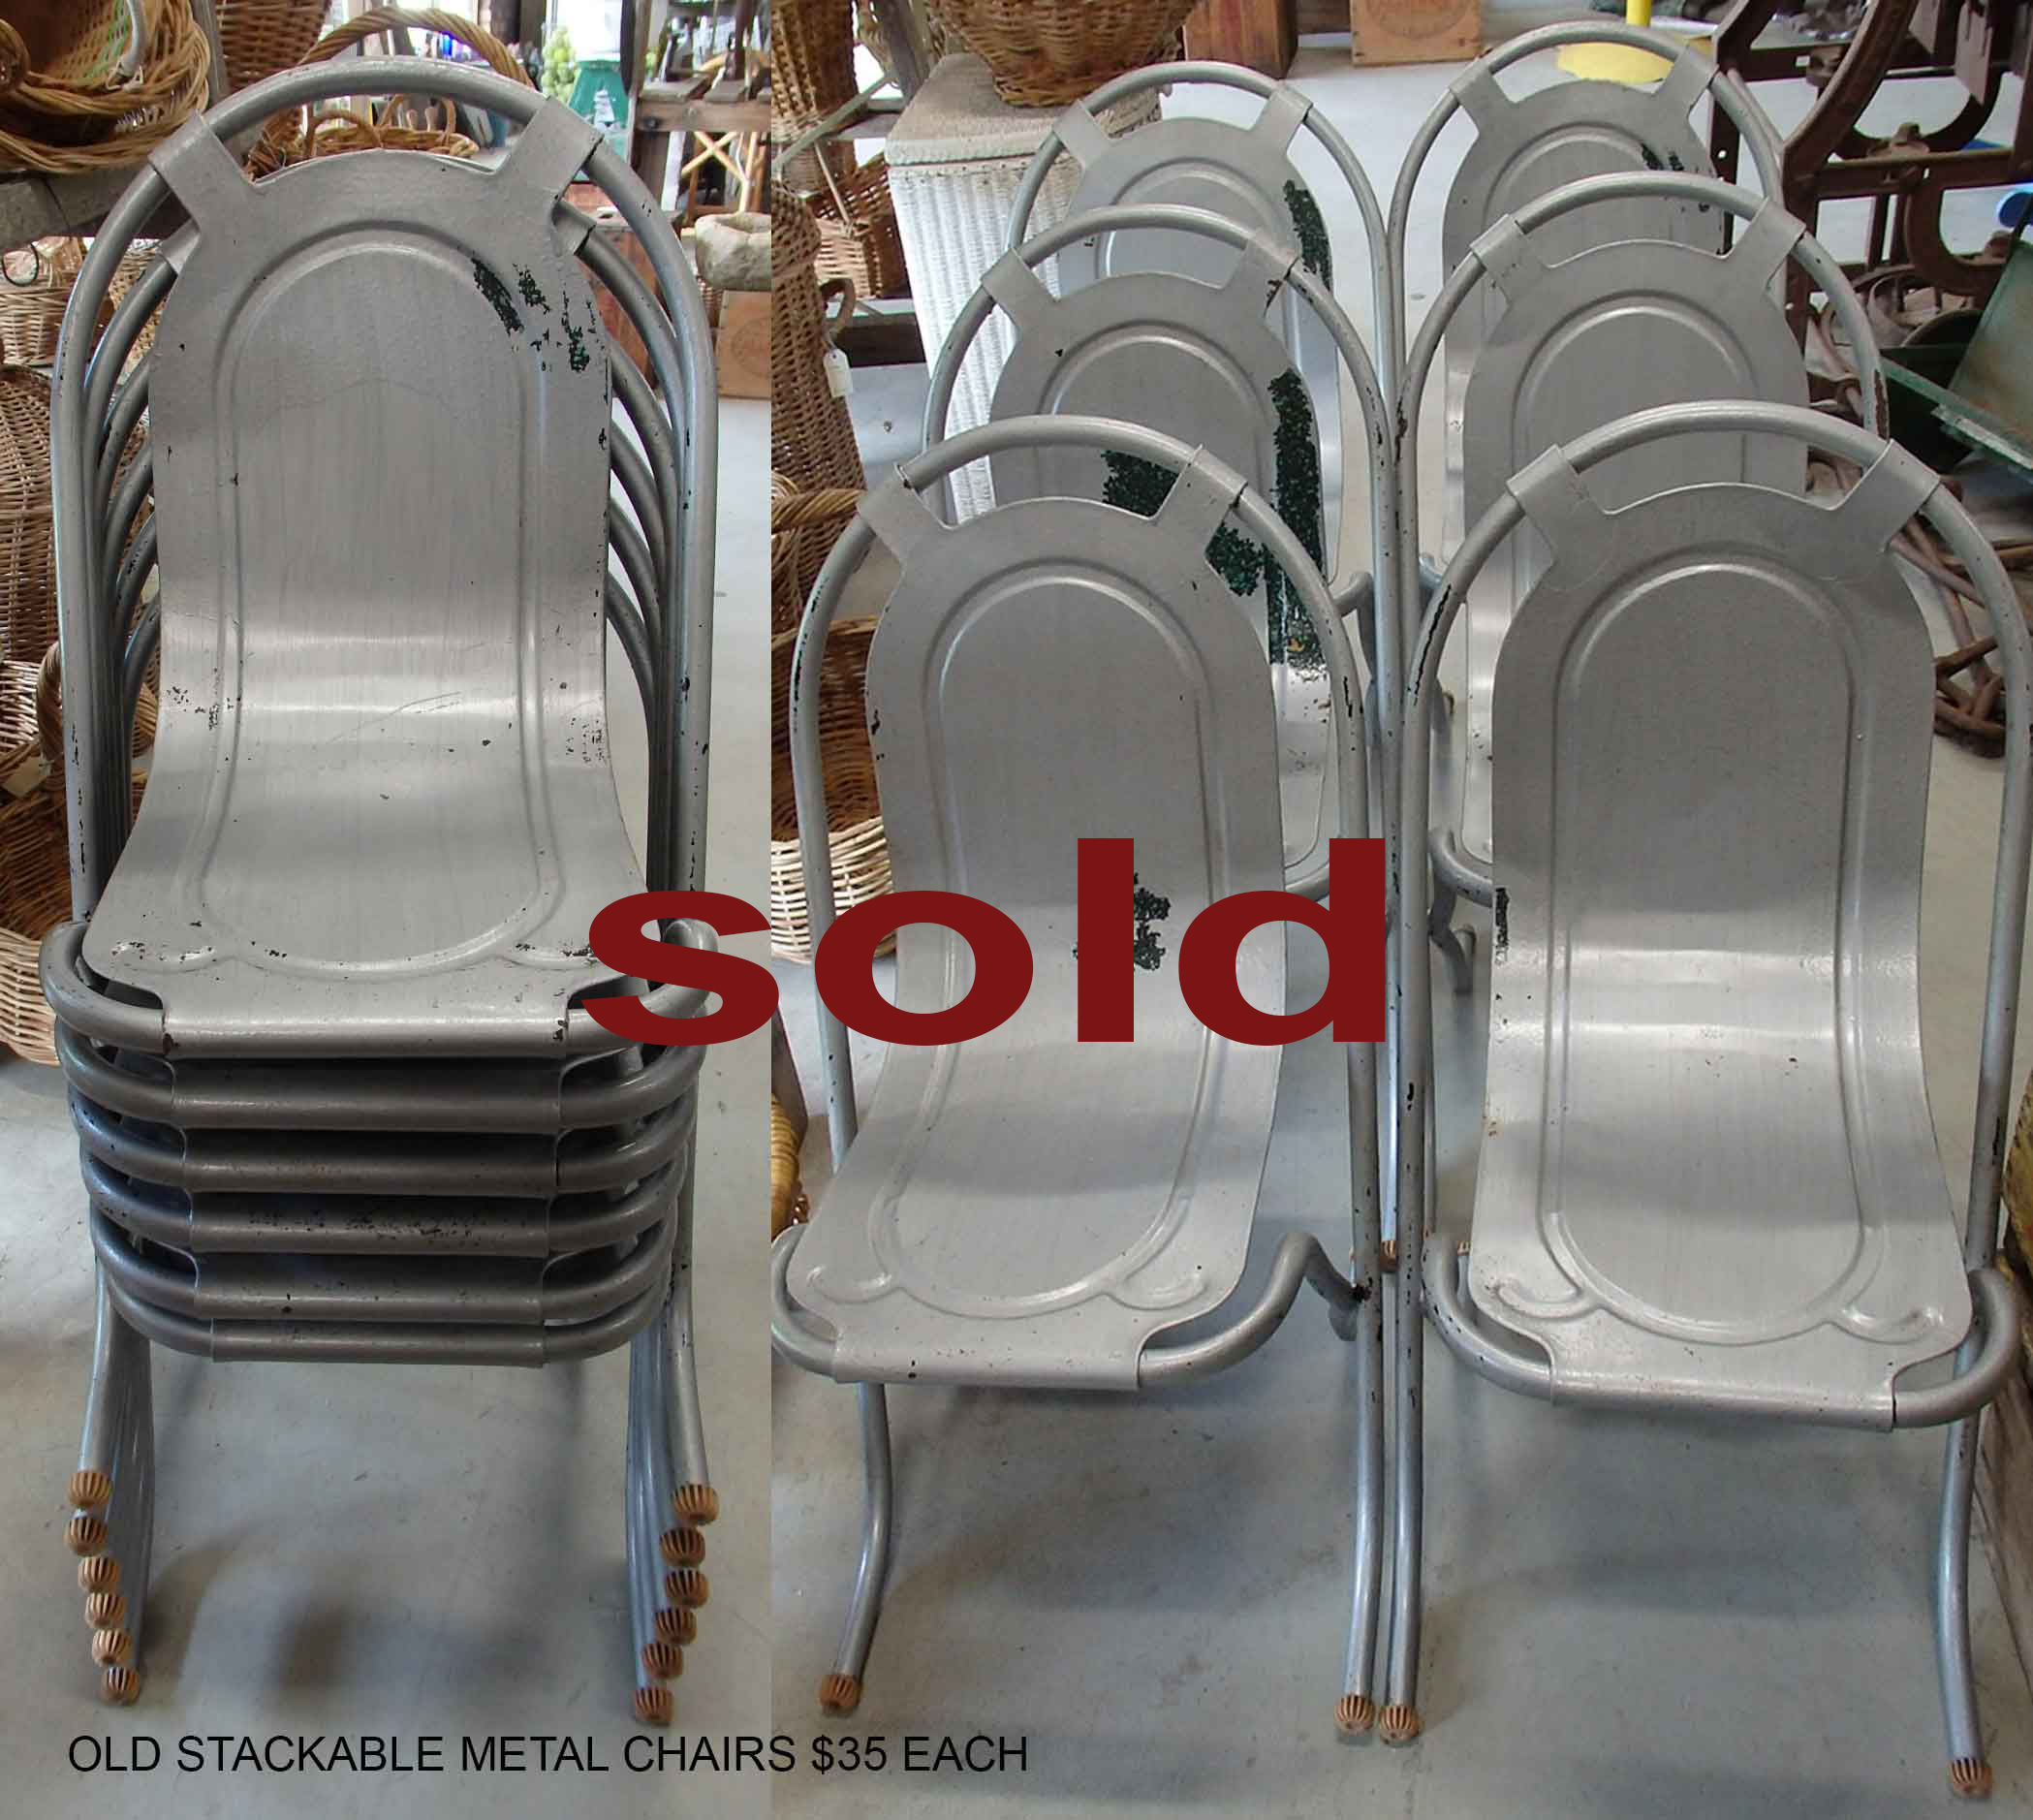 6 old metal stacking chairs $35 each  for sale at Heaths Old Wares, Collectables, Antiques & Industrial Antiques, 19-21 Broadway, Burringbar NSW 2483 Ph 0266771181 open 7 days